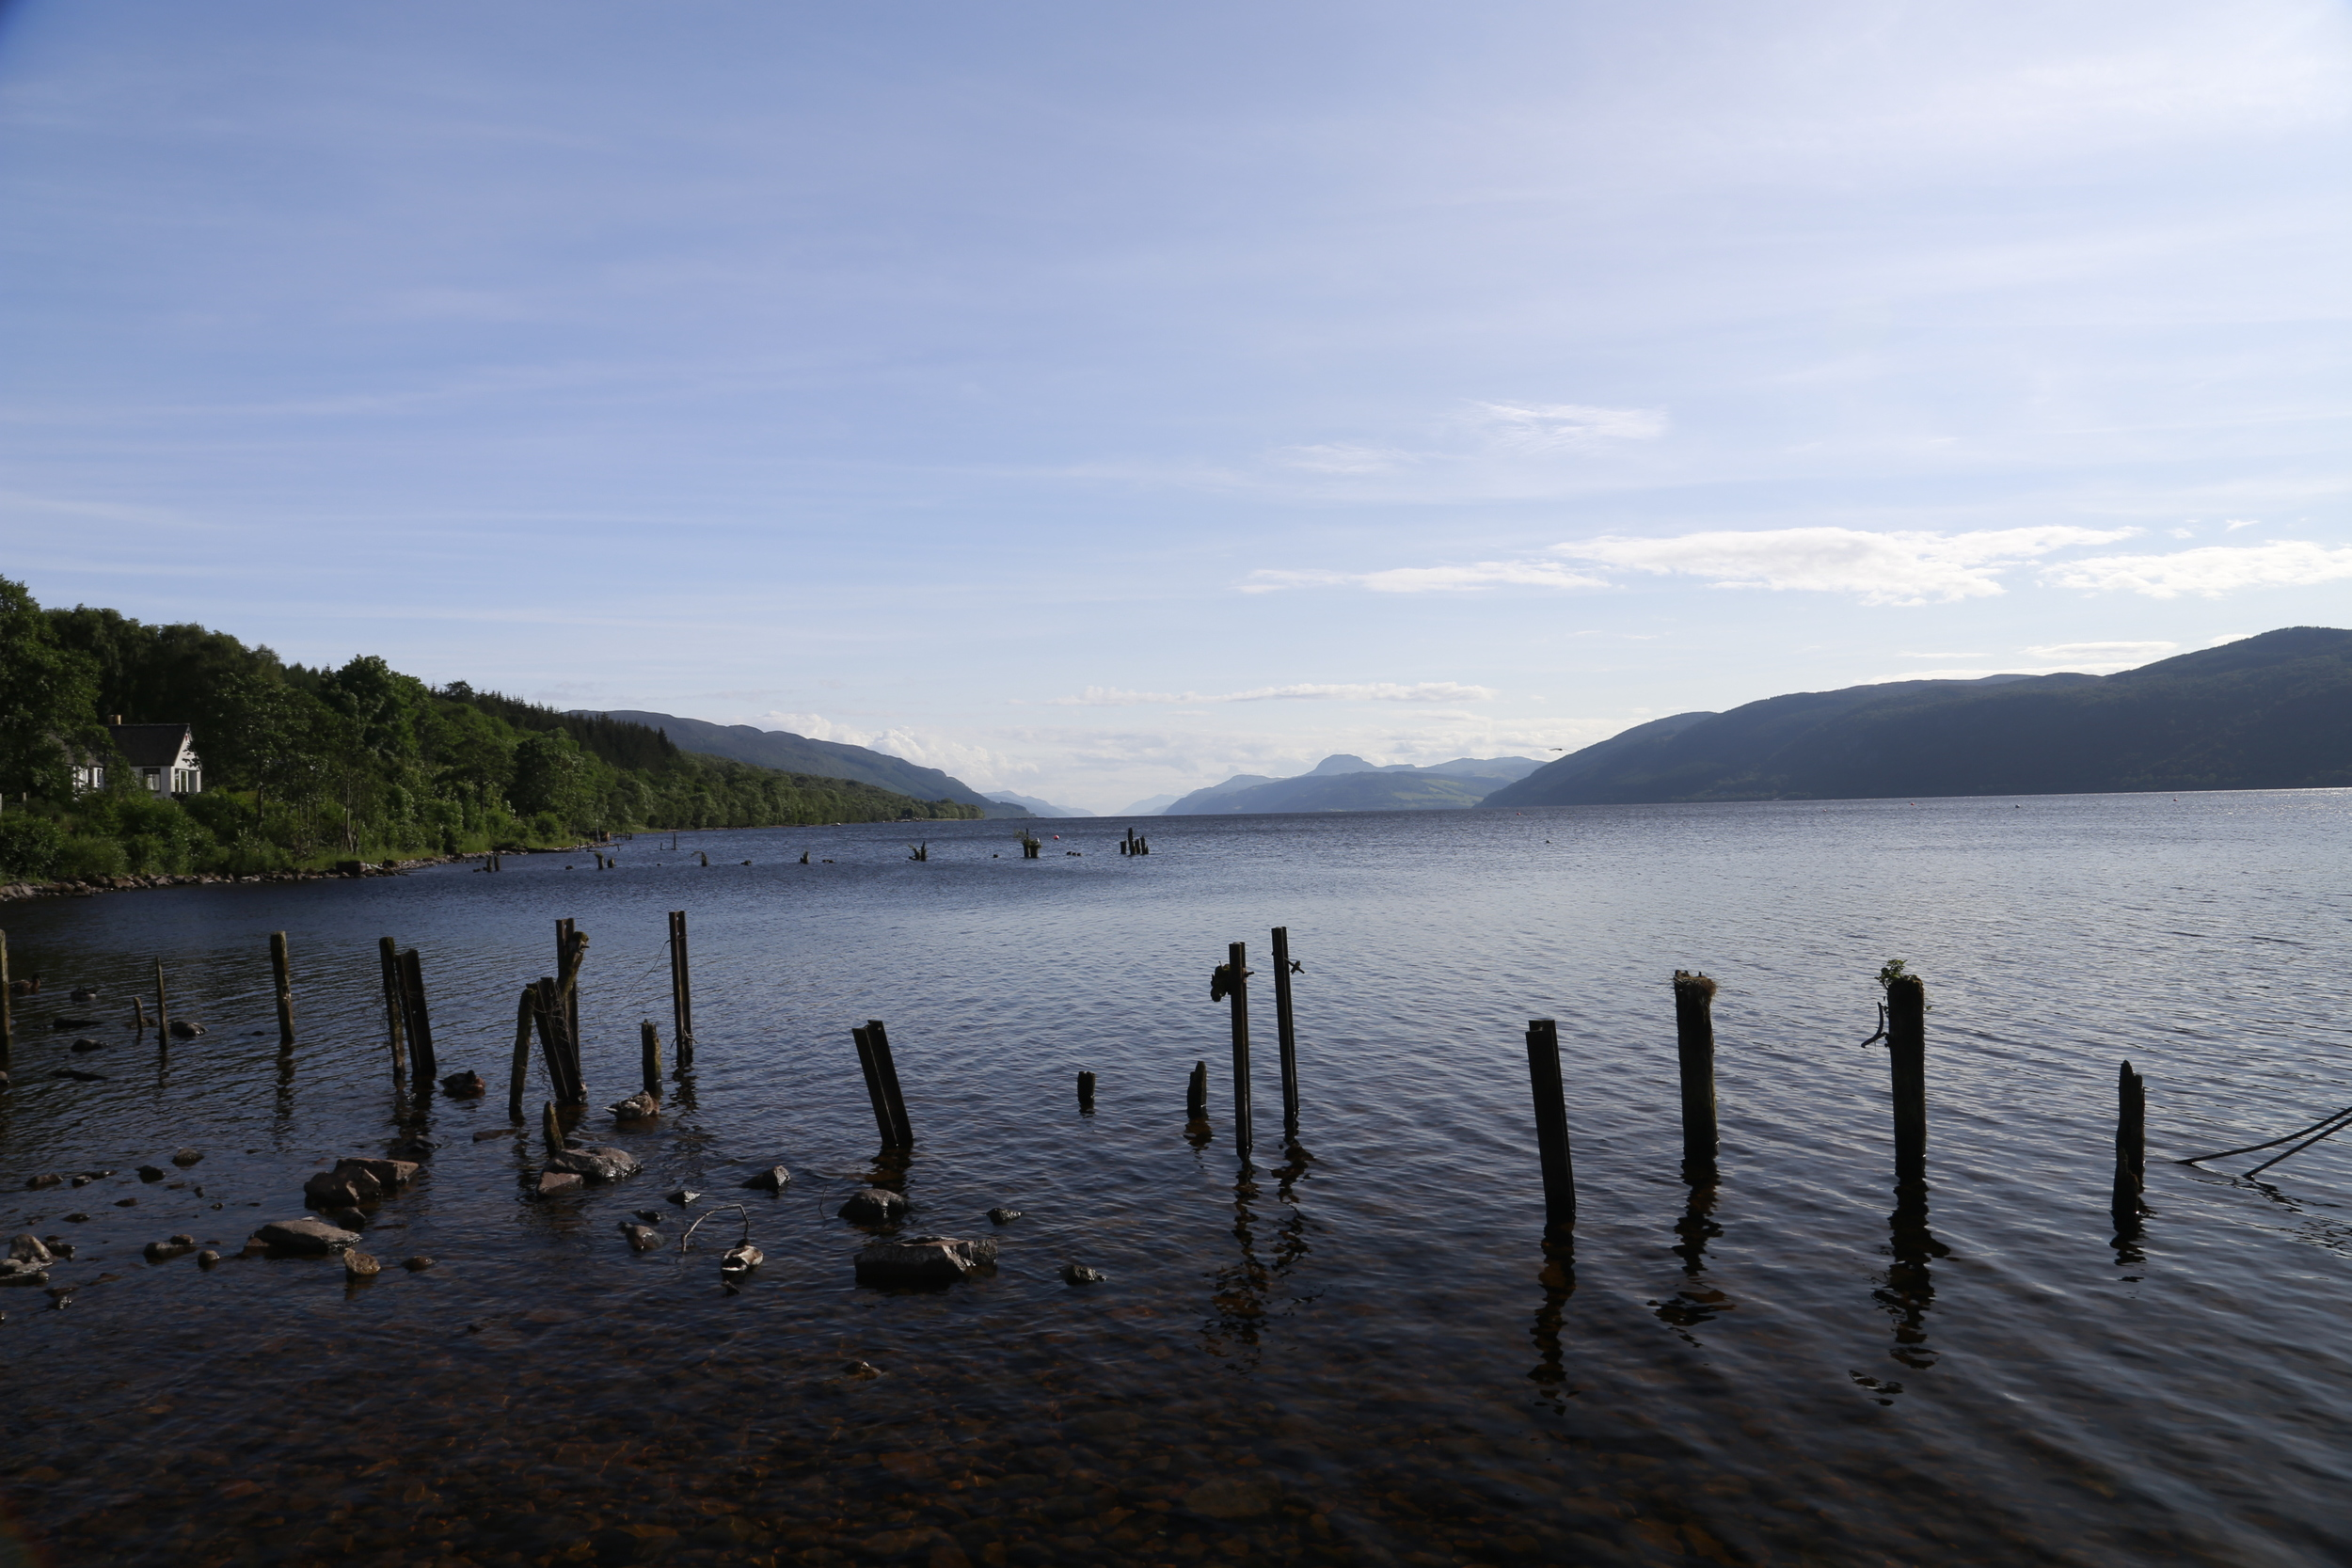 loch ness, scotland, loch, photography, canon, canon 6d, portrait, landscape, dslr, photo, photos, go pro, video, photographer, fuji, leica